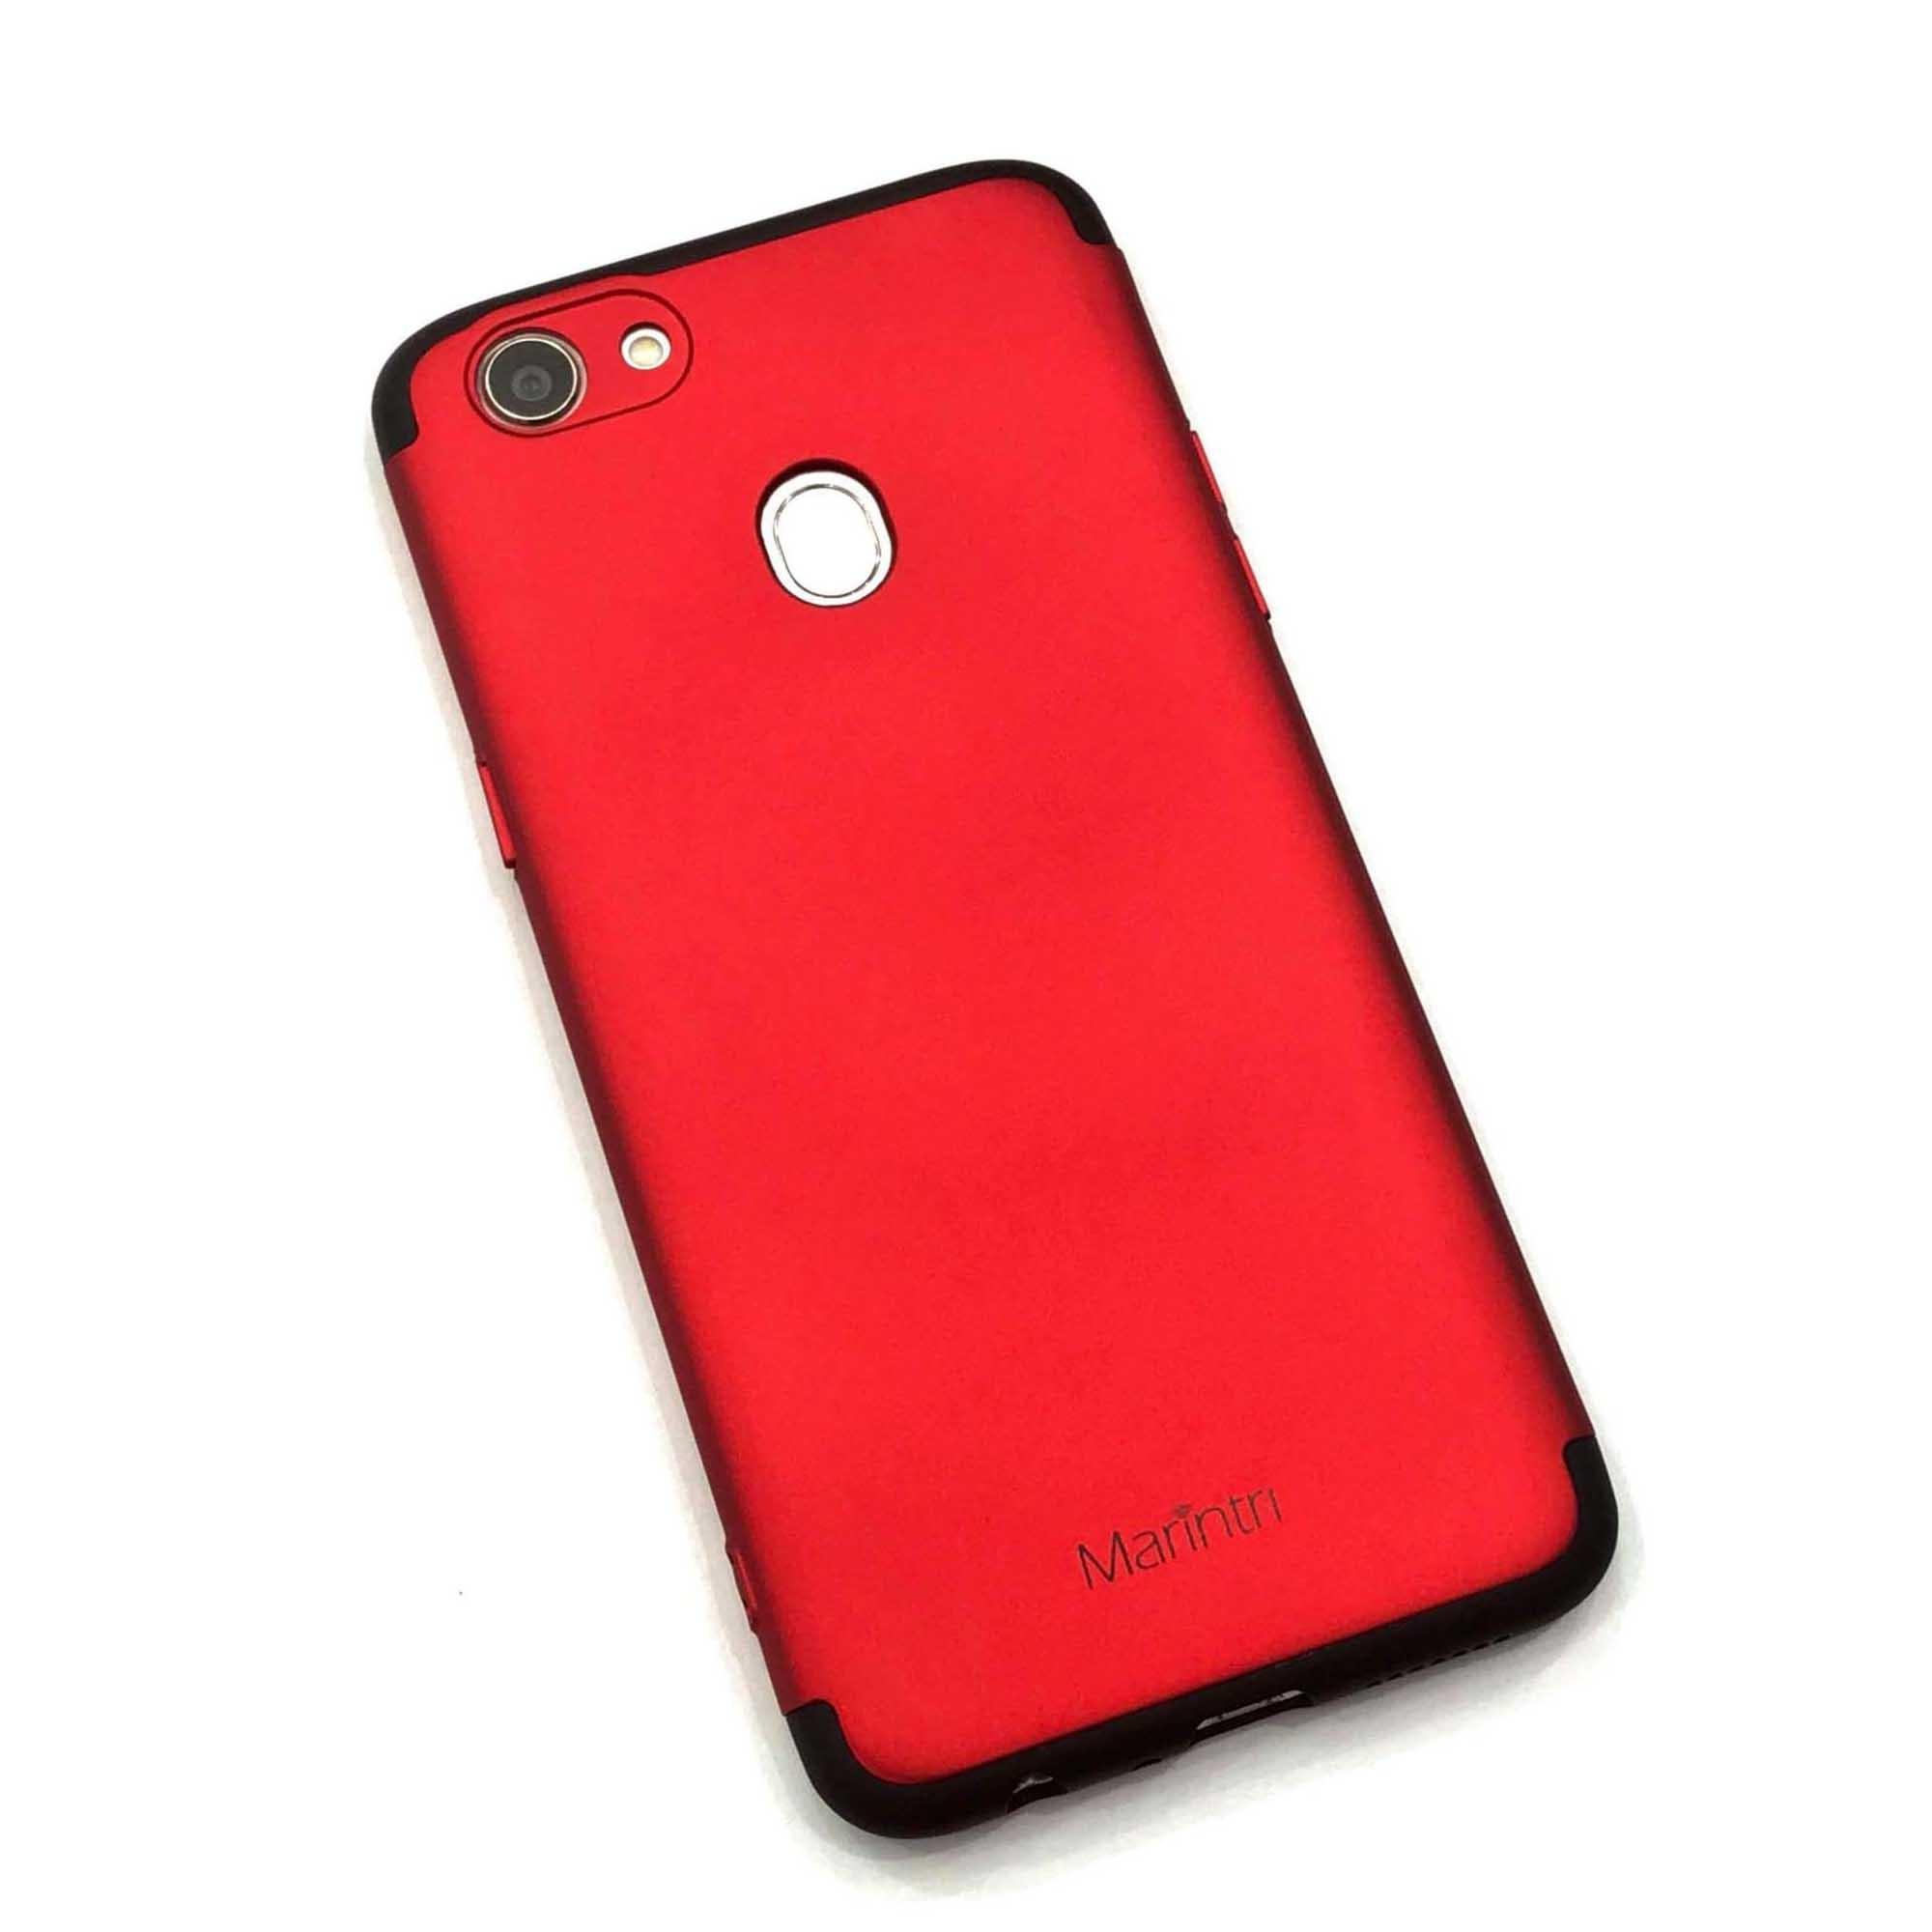 Marintri Case Samsung Galaxy J3 Pro - 360 Full Protection Red -  black